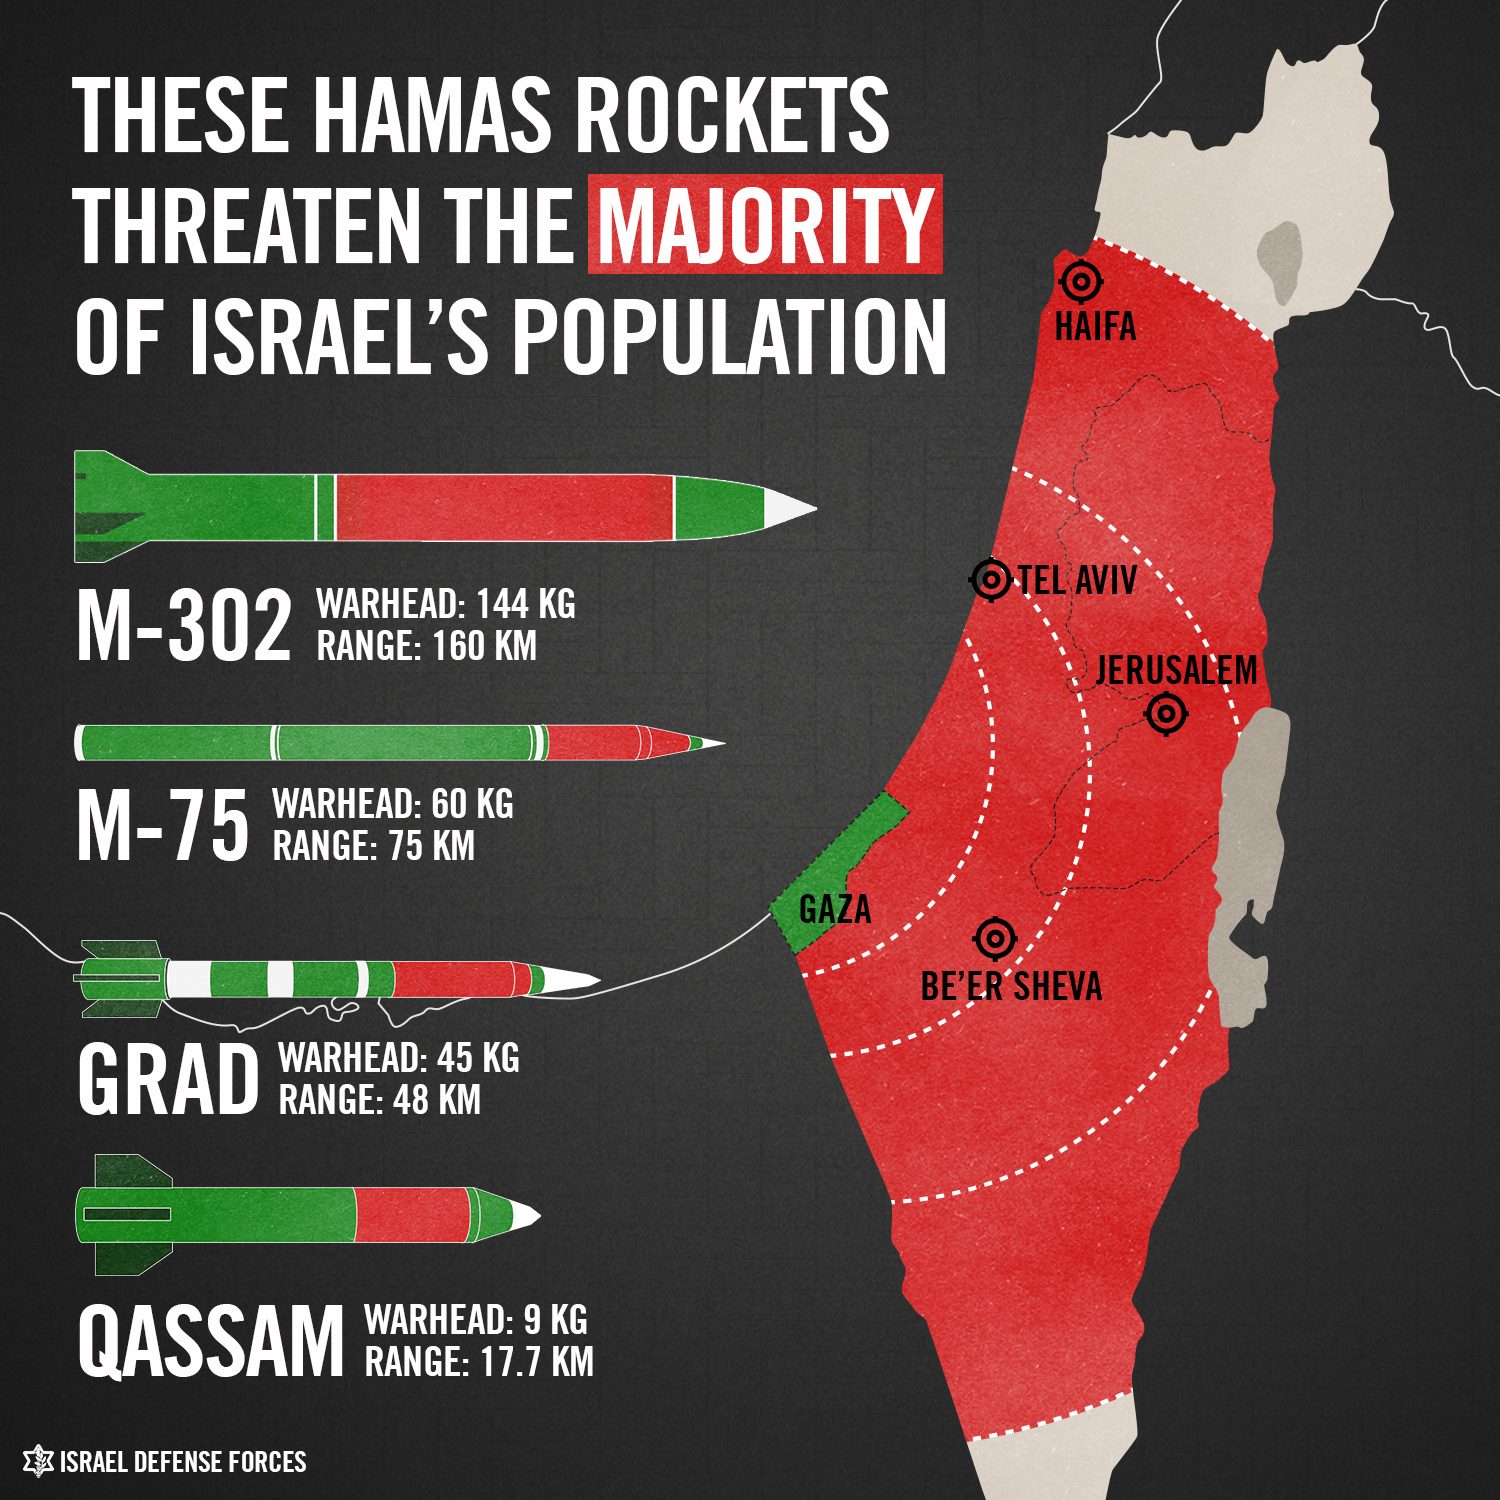 rocket threat to Israel population